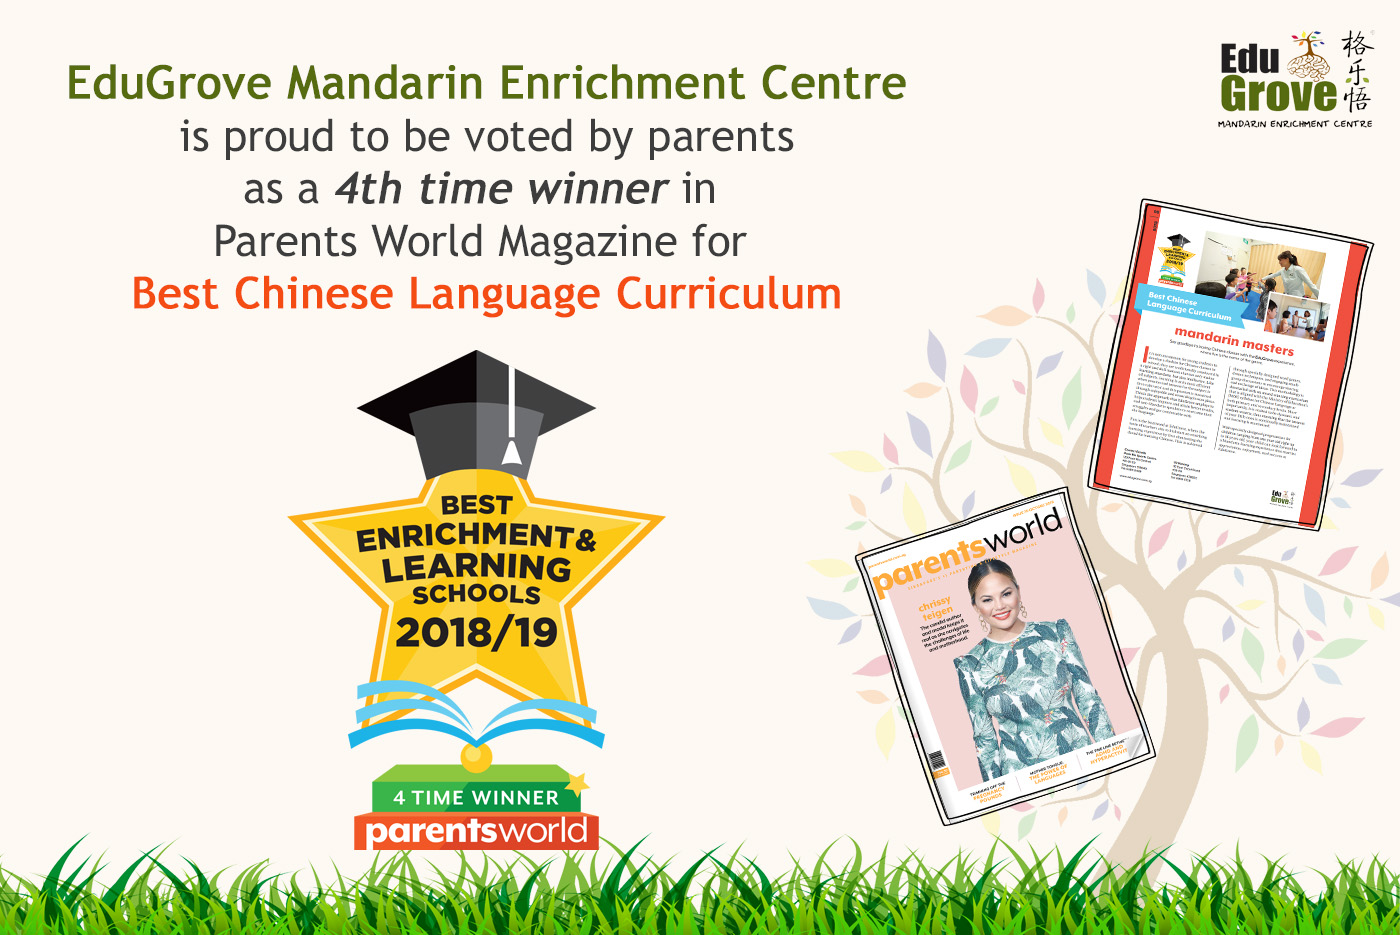 Our Accolades - Parents World Best Chinese Language Curriculum 2018